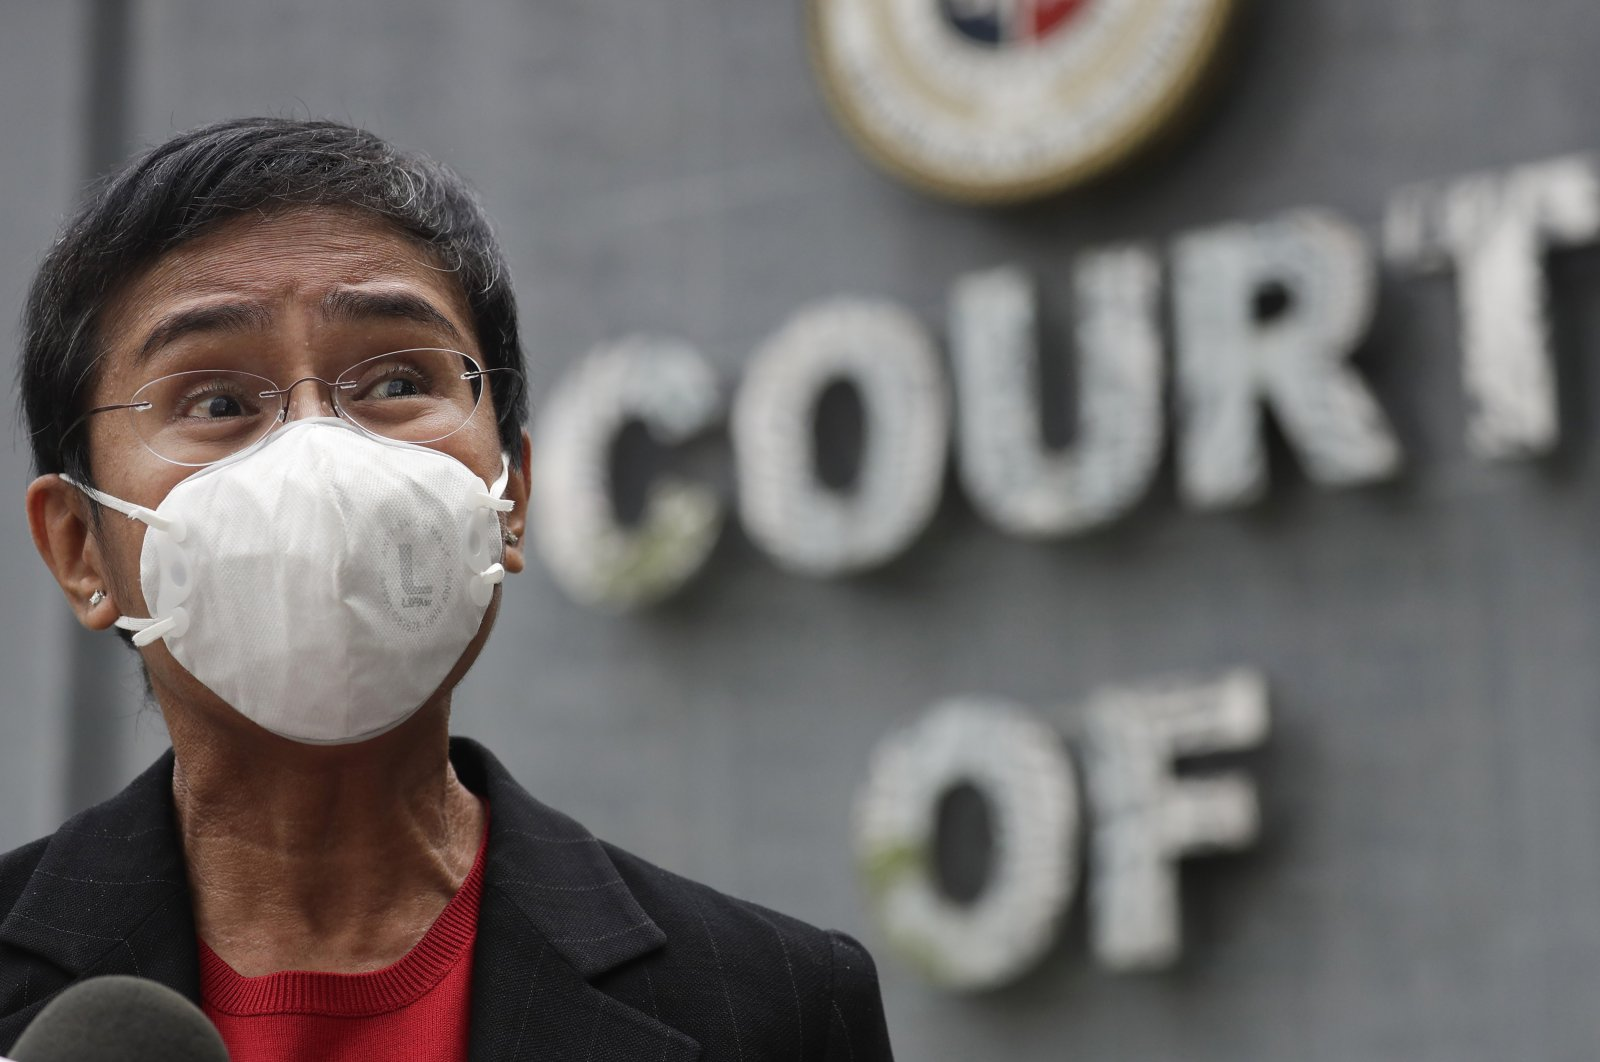 Journalist Maria Ressa, wearing a face mask, talks to reporters outside the Court of Tax Appeals in Manila, Philippines, March 4, 2021. (AP Photo)